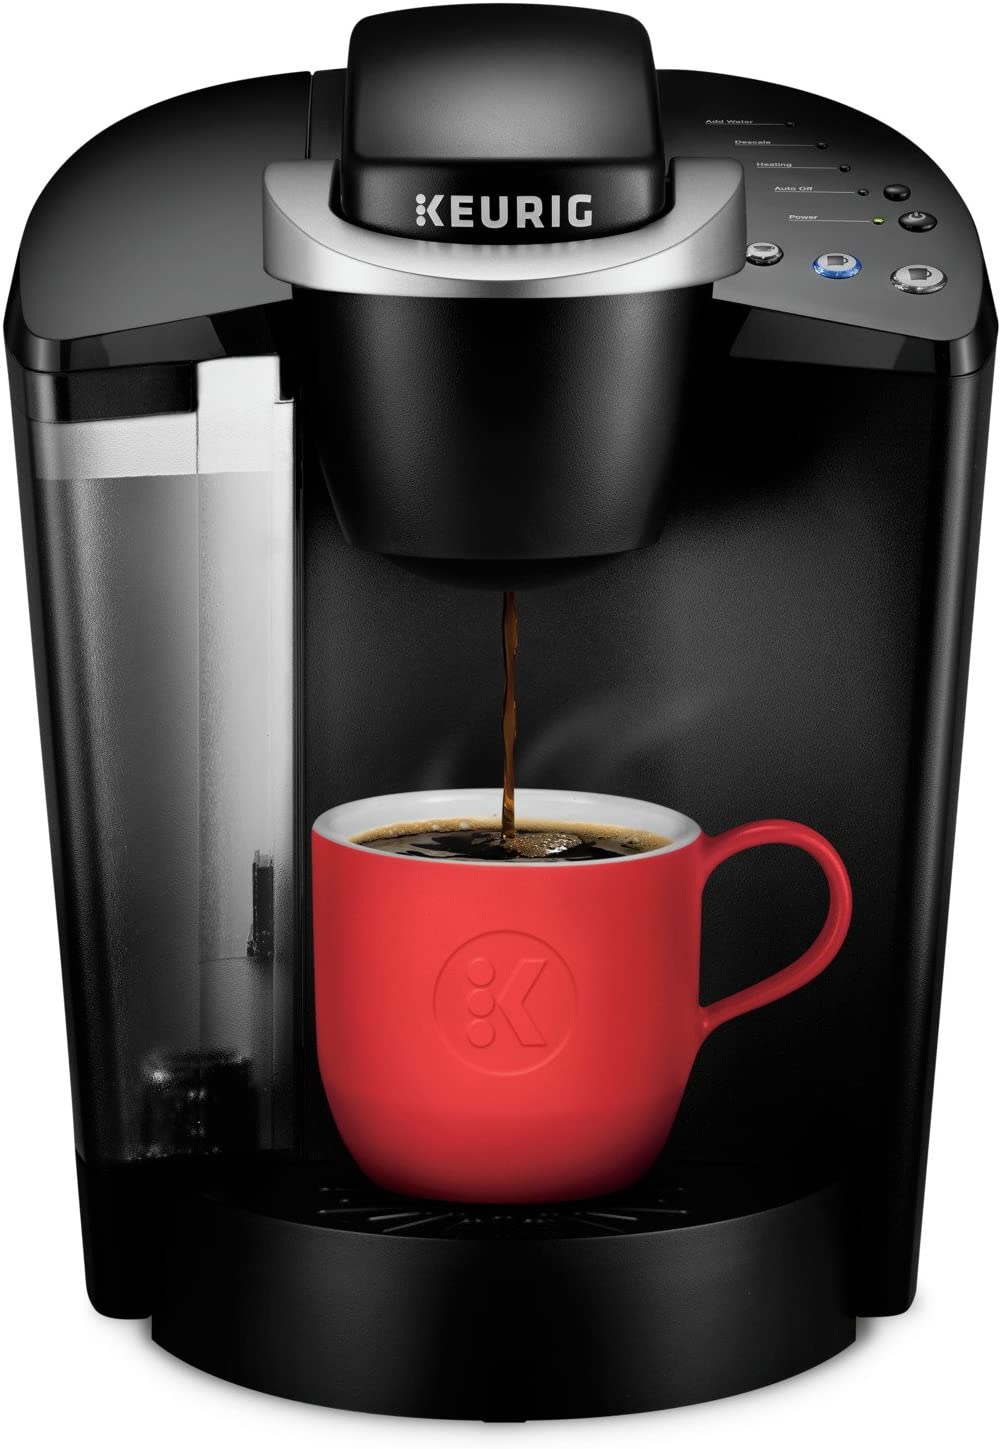 Keurig K-Classic Coffee Maker, Single Serve K-Cup Pod Coffee Brewer